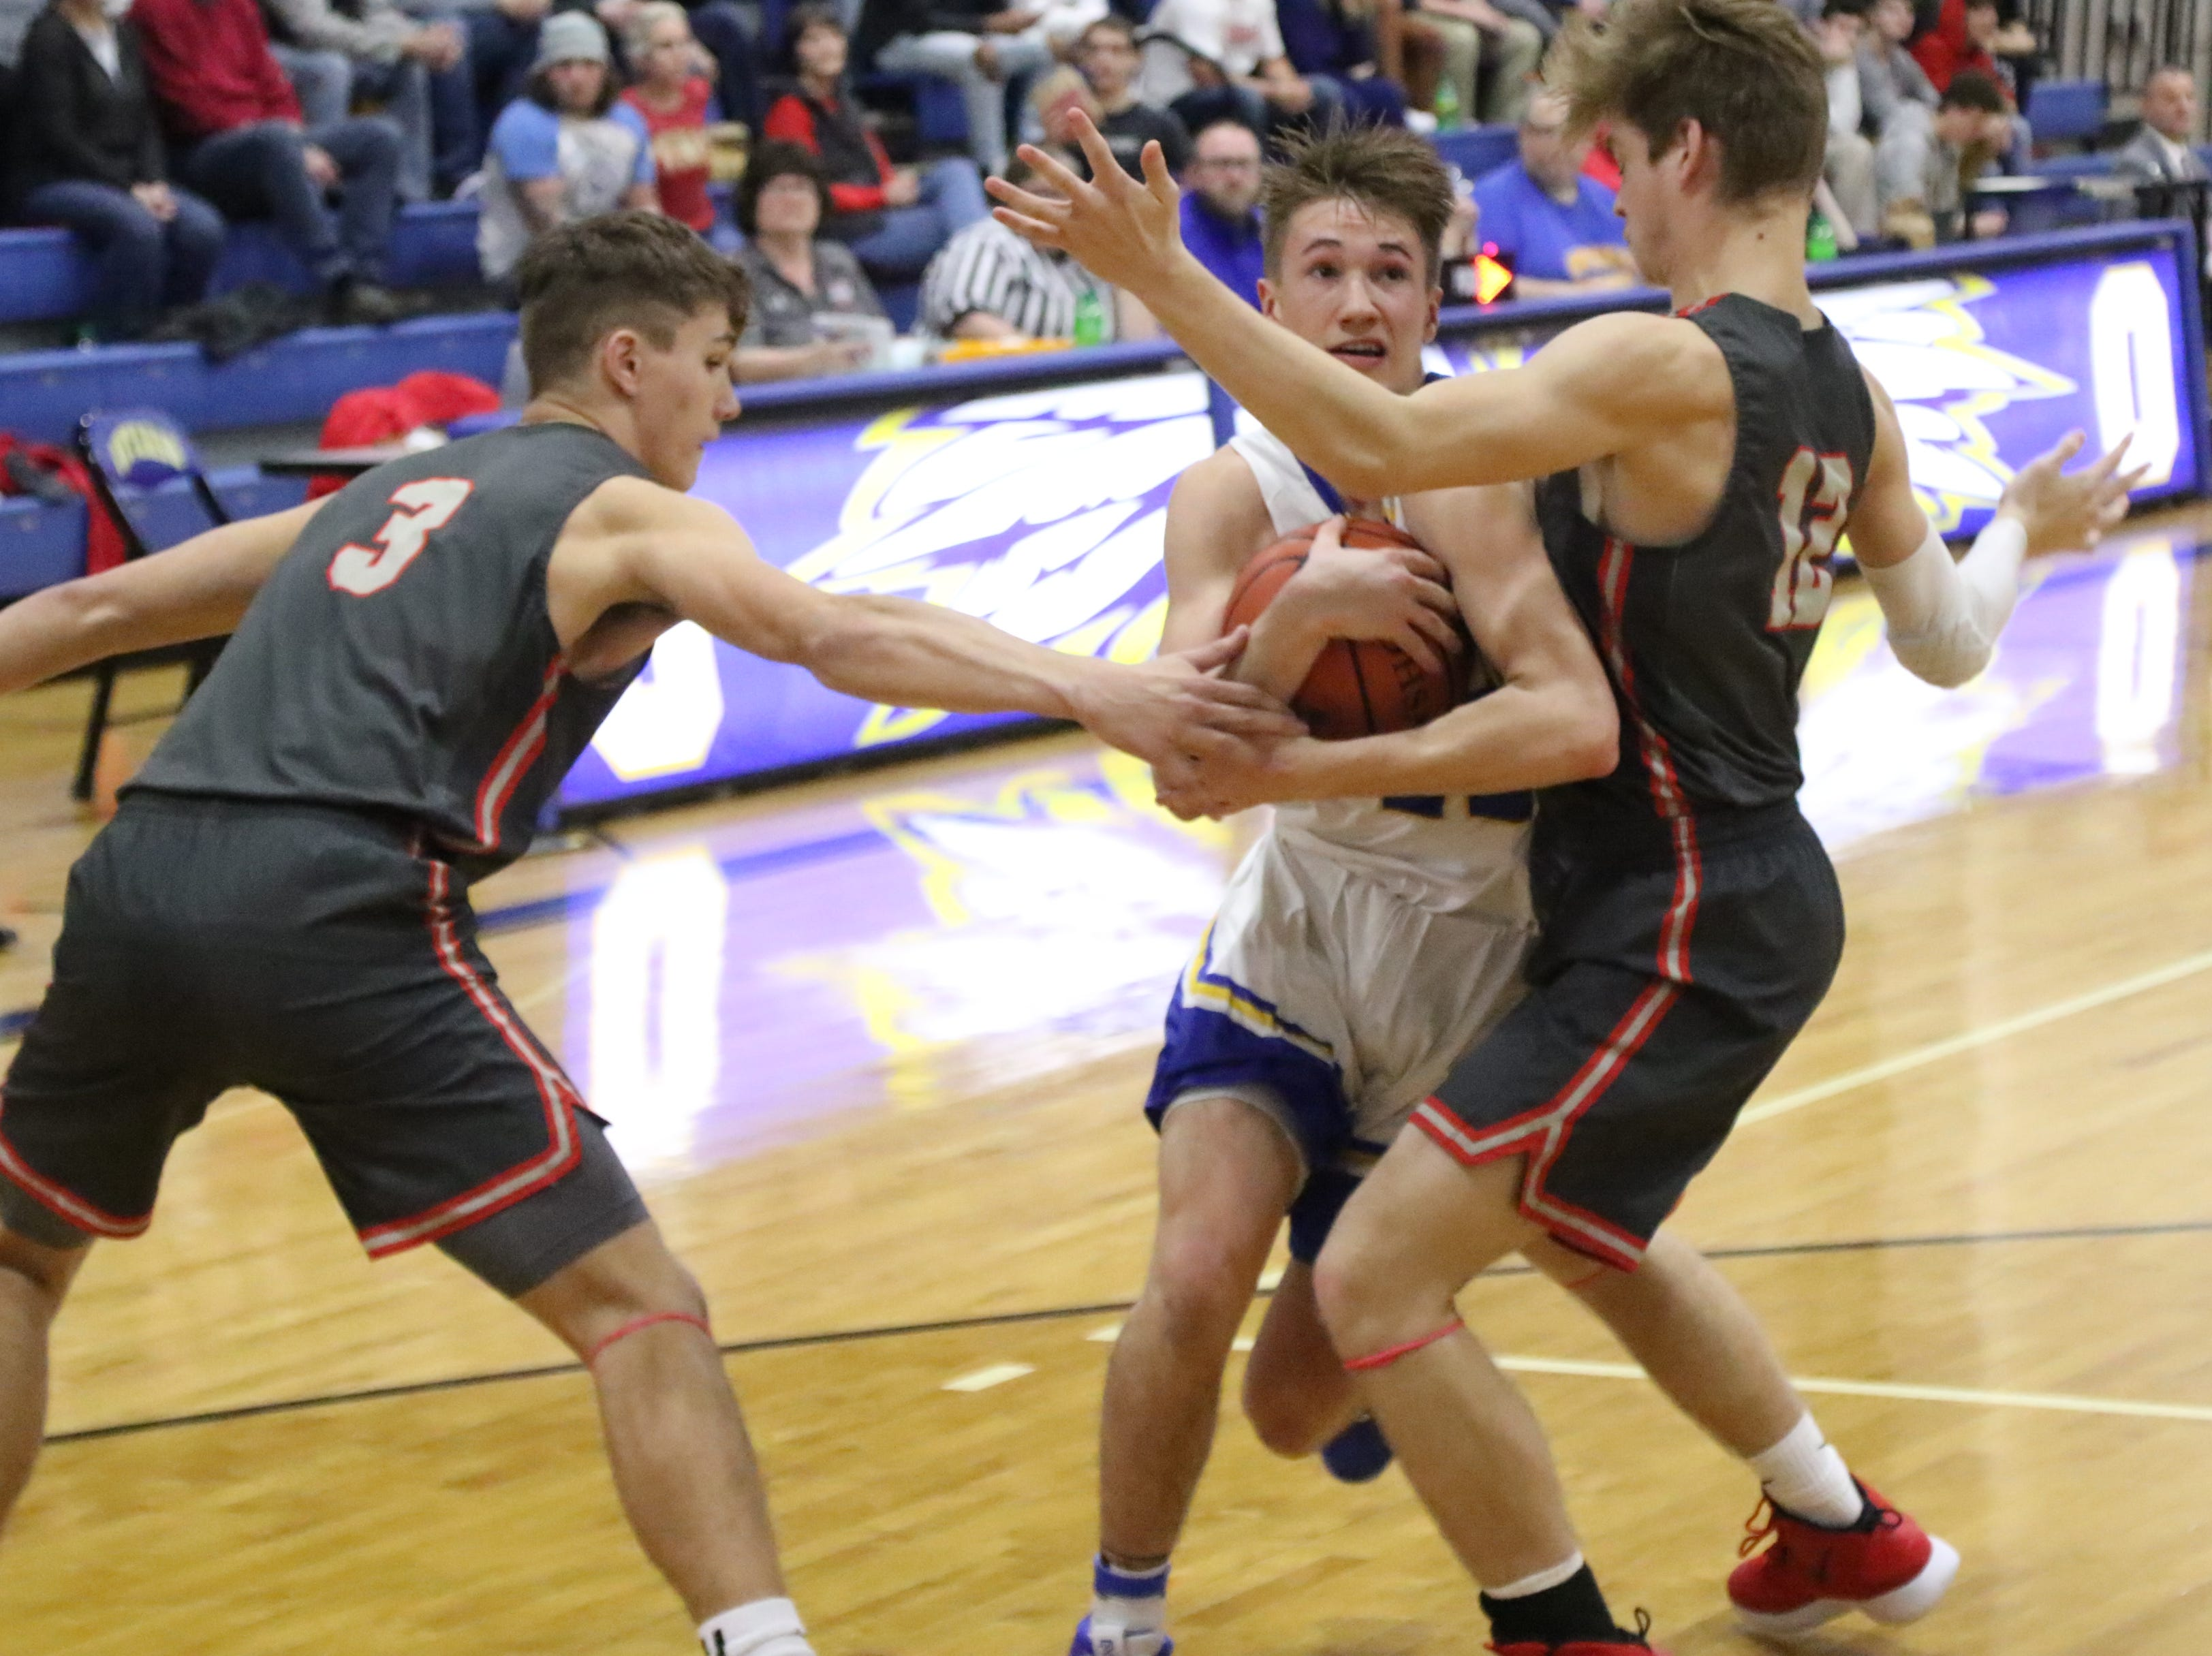 GALLERY: Ontario 45, Shelby 31